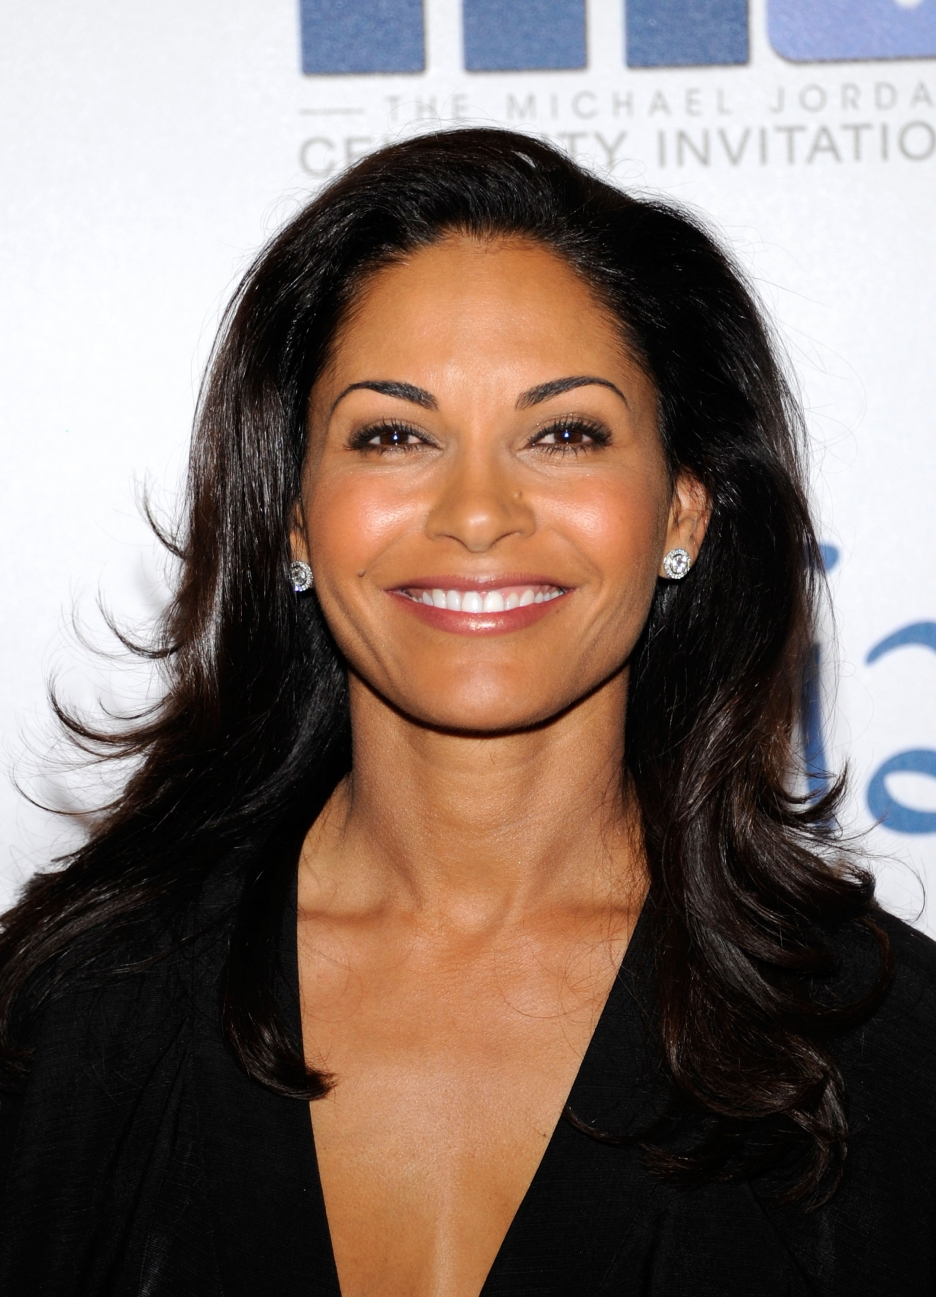 The 52-year old daughter of father (?) and mother(?) Salli Richardson in 2020 photo. Salli Richardson earned a 0,235 million dollar salary - leaving the net worth at 2 million in 2020